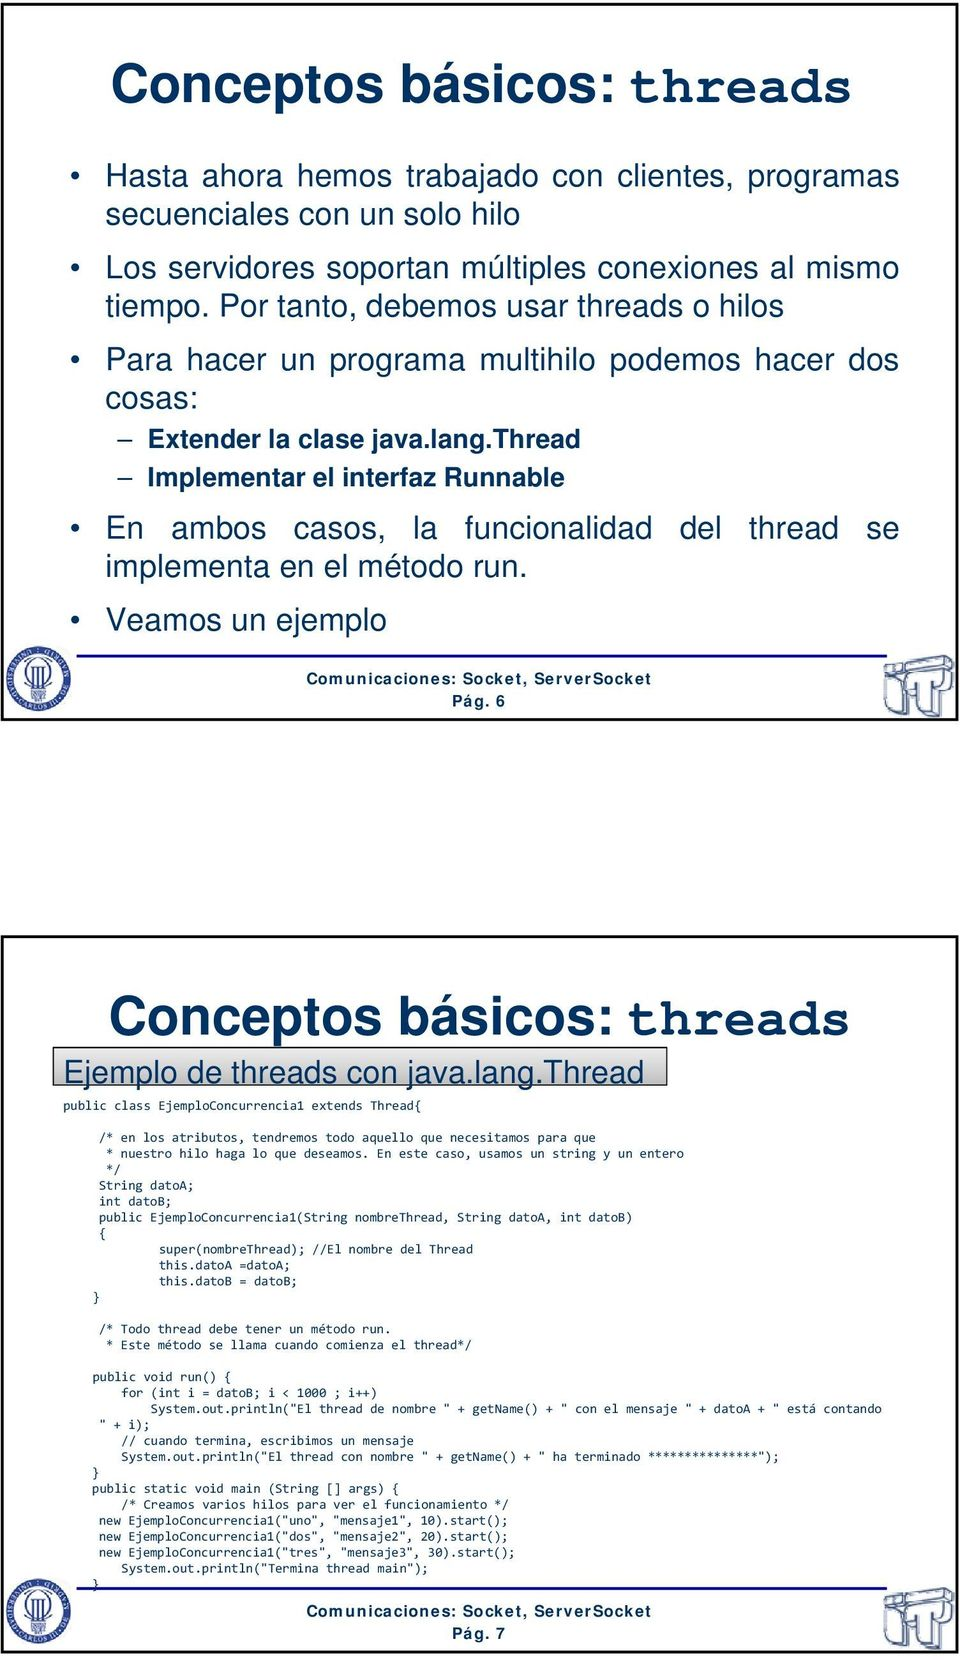 thread Implementar el interfaz Runnable En ambos casos, la funcionalidad del thread se implementa en el método run. Veamos un ejemplo Pág. 6 Conceptos básicos: threads Ejemplo de threads con java.